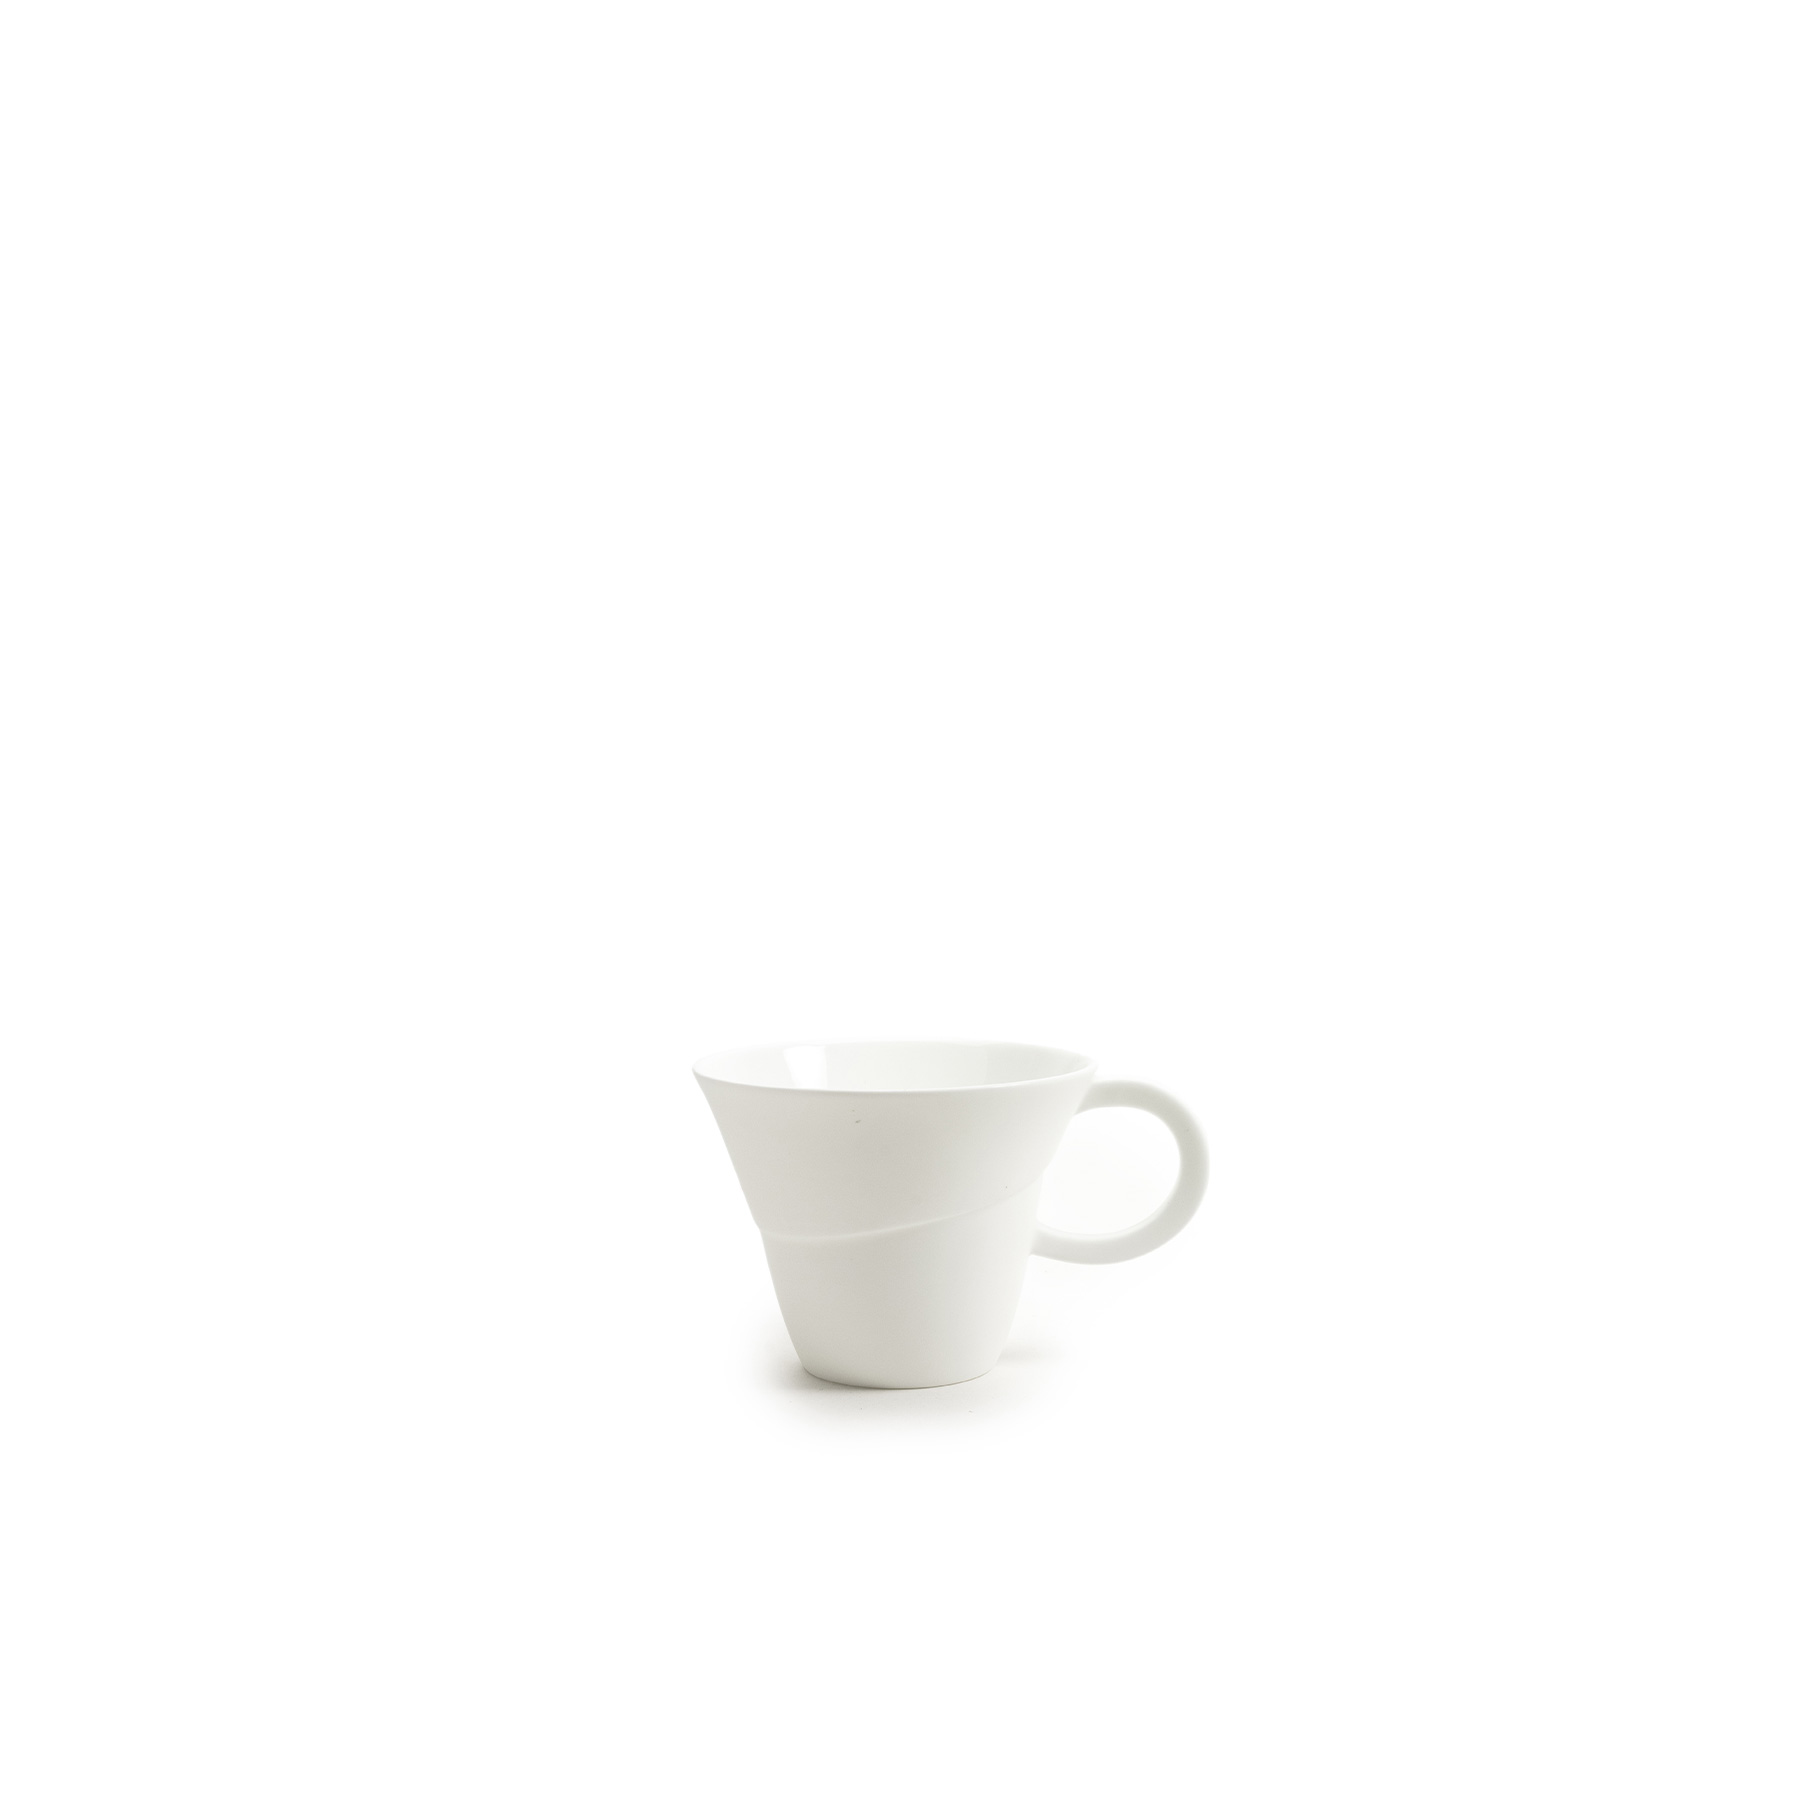 Flare Mug - Russell Pinch and Oona Bannon are renowned furniture and lighting designers and have reduced the scale in which they design to create Flare. Flare is a fine bone china collection that involves generous and curvaceous forms paired with exaggerated ratios delivered via handles and spouts. The shapes offer a sculptural modernity whilst referencing classic form, and make a virtue of light and shadow. For a radical departure from their usual palette, the Festival Jug is a hand-painted prestige piece that is wild in colour and takes an arduous five and a half hours to decorate.  | Matter of Stuff